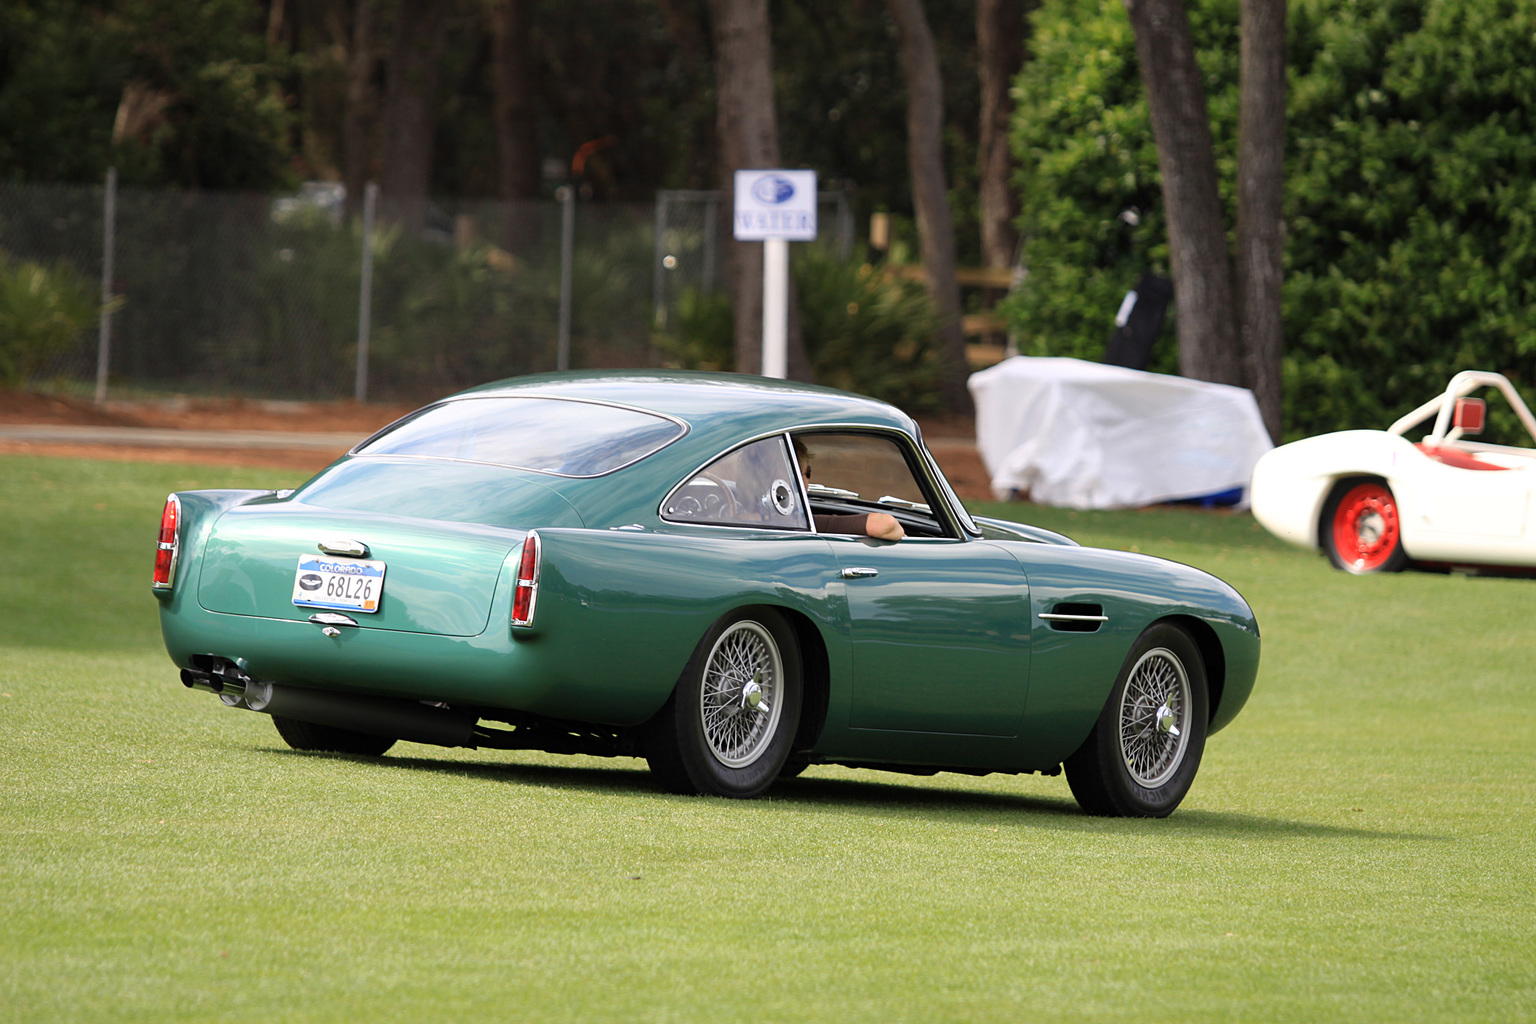 1960 aston martin db4 gt gallery | | supercars